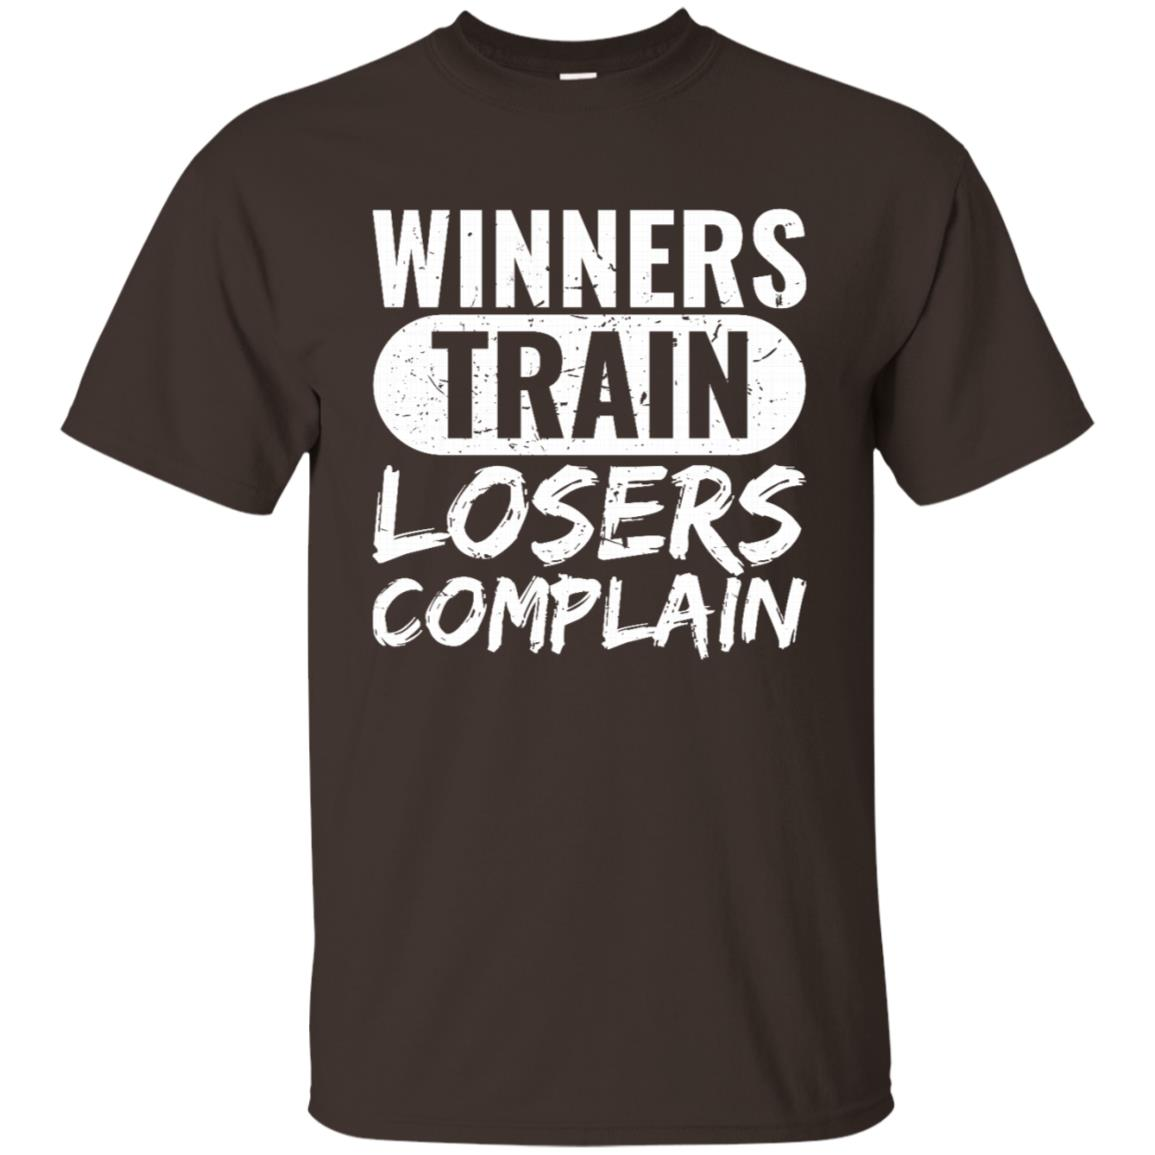 Winners Train Losers Complain Workout Training Unisex Short Sleeve